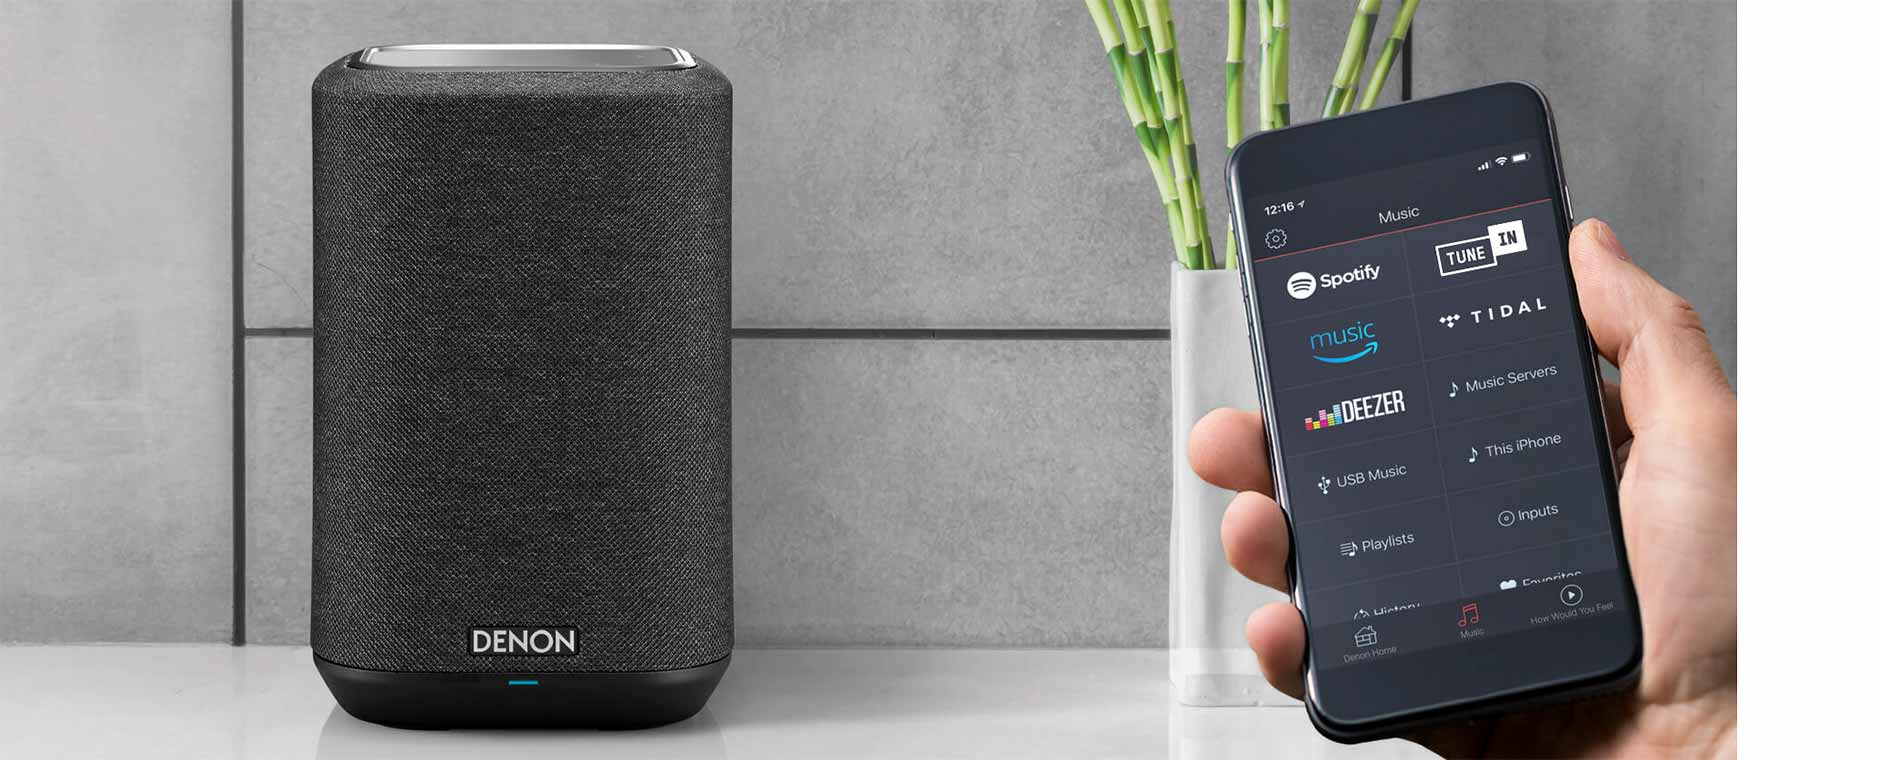 Enceinte connectée WiFi, AirPlay 2 et Bluetooth avec application HEOS pour le multiroom audio